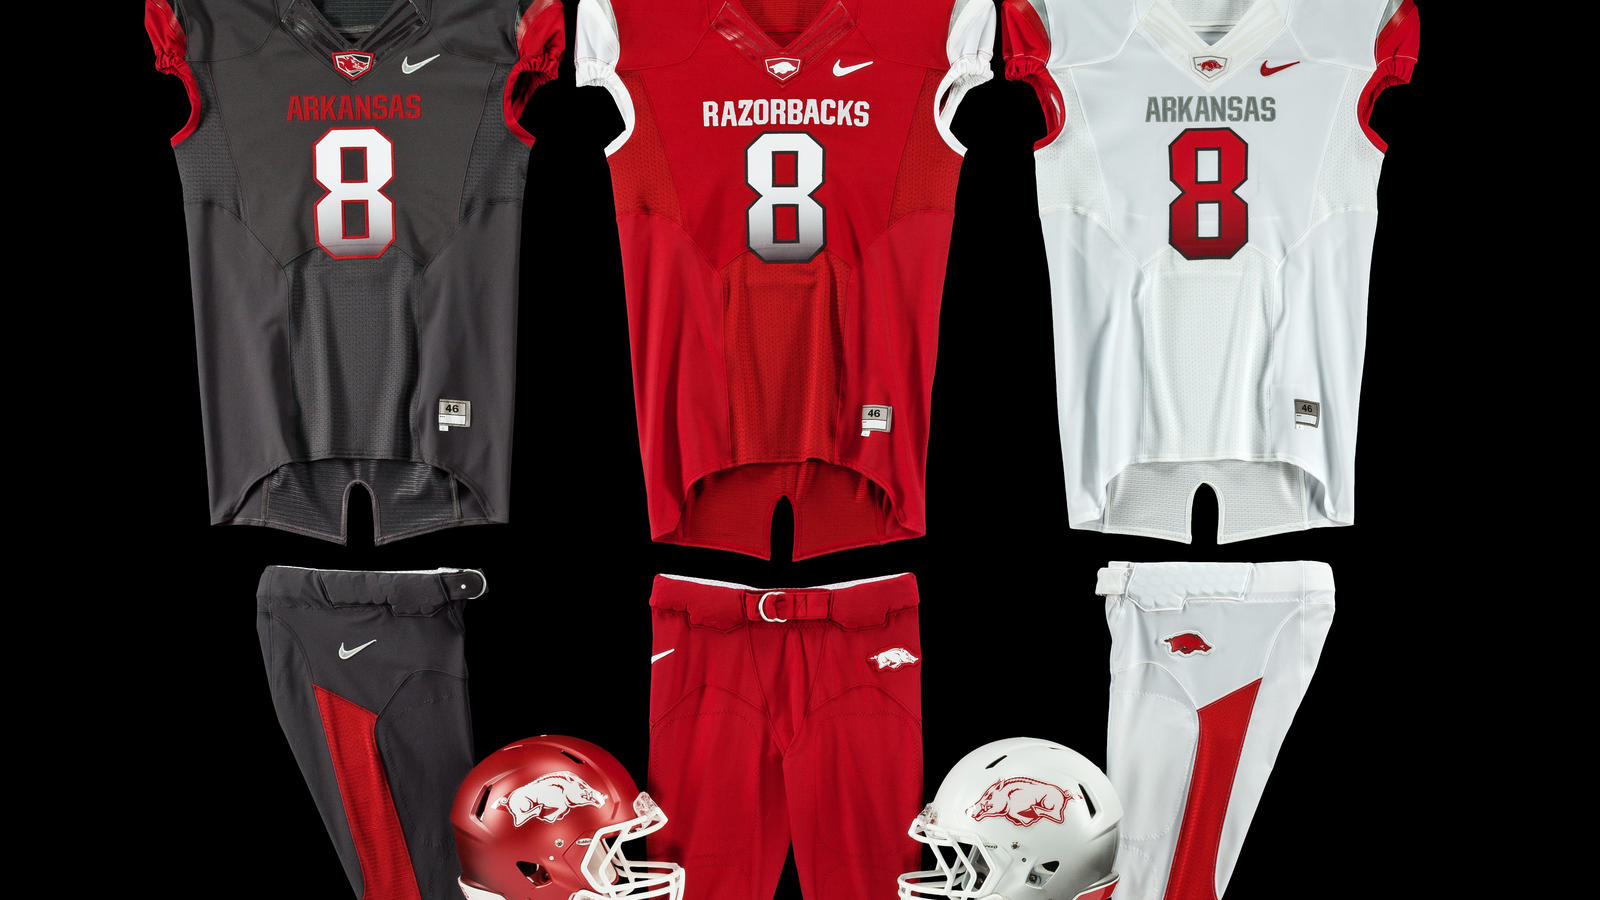 Arkansas Razorbacks Unveil New Modern Uniform Design For ...